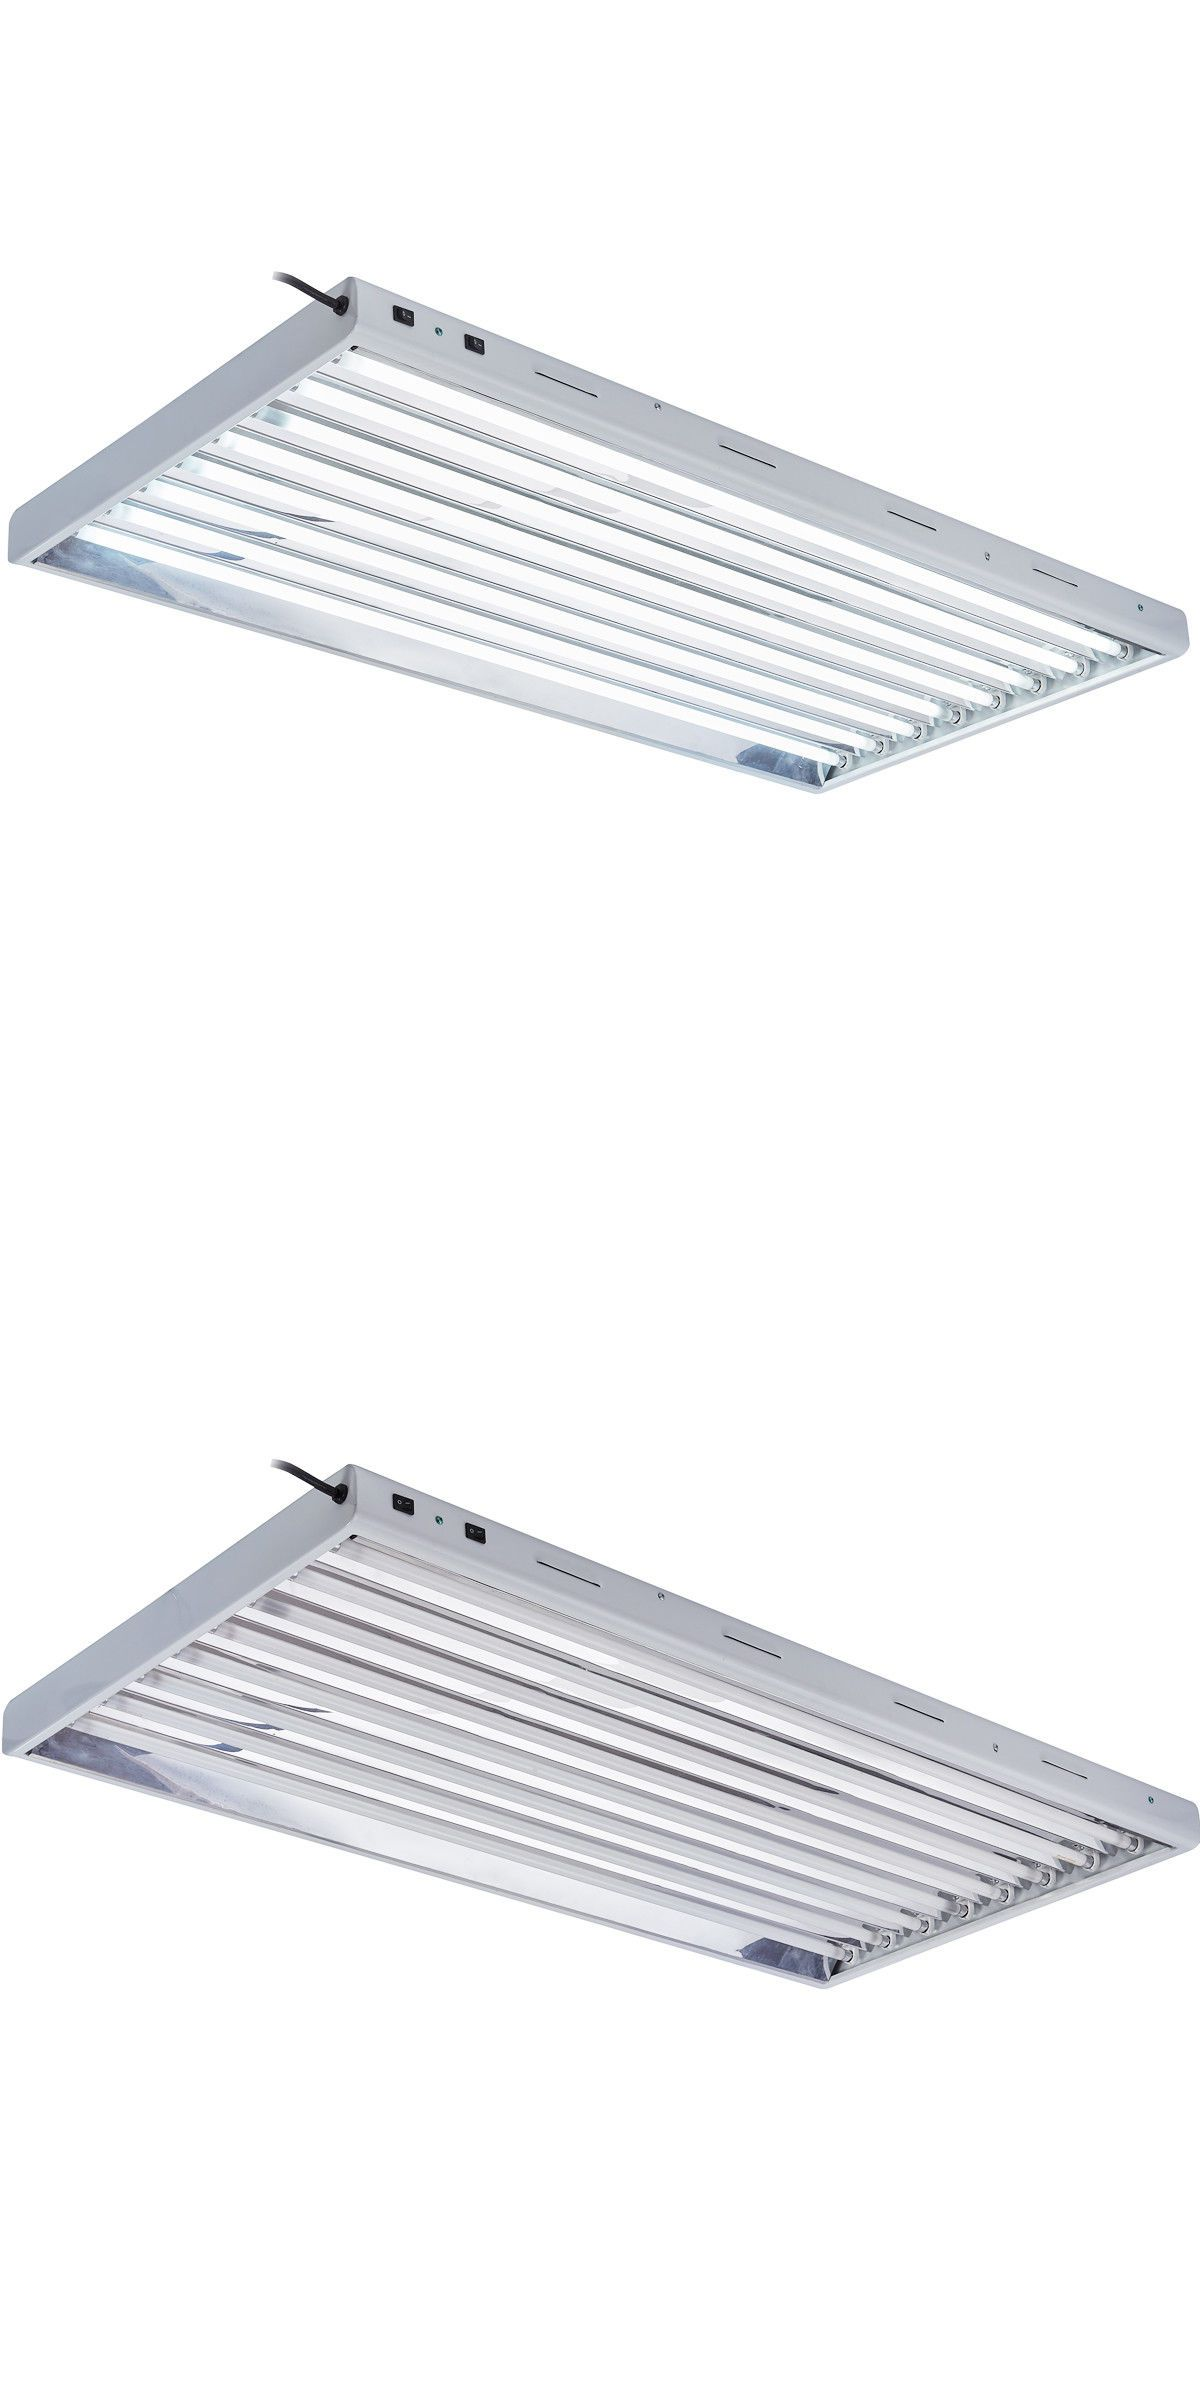 Details About 2ft 4ft T5 Grow Light W 4 6 8 Lamp 24w 54w